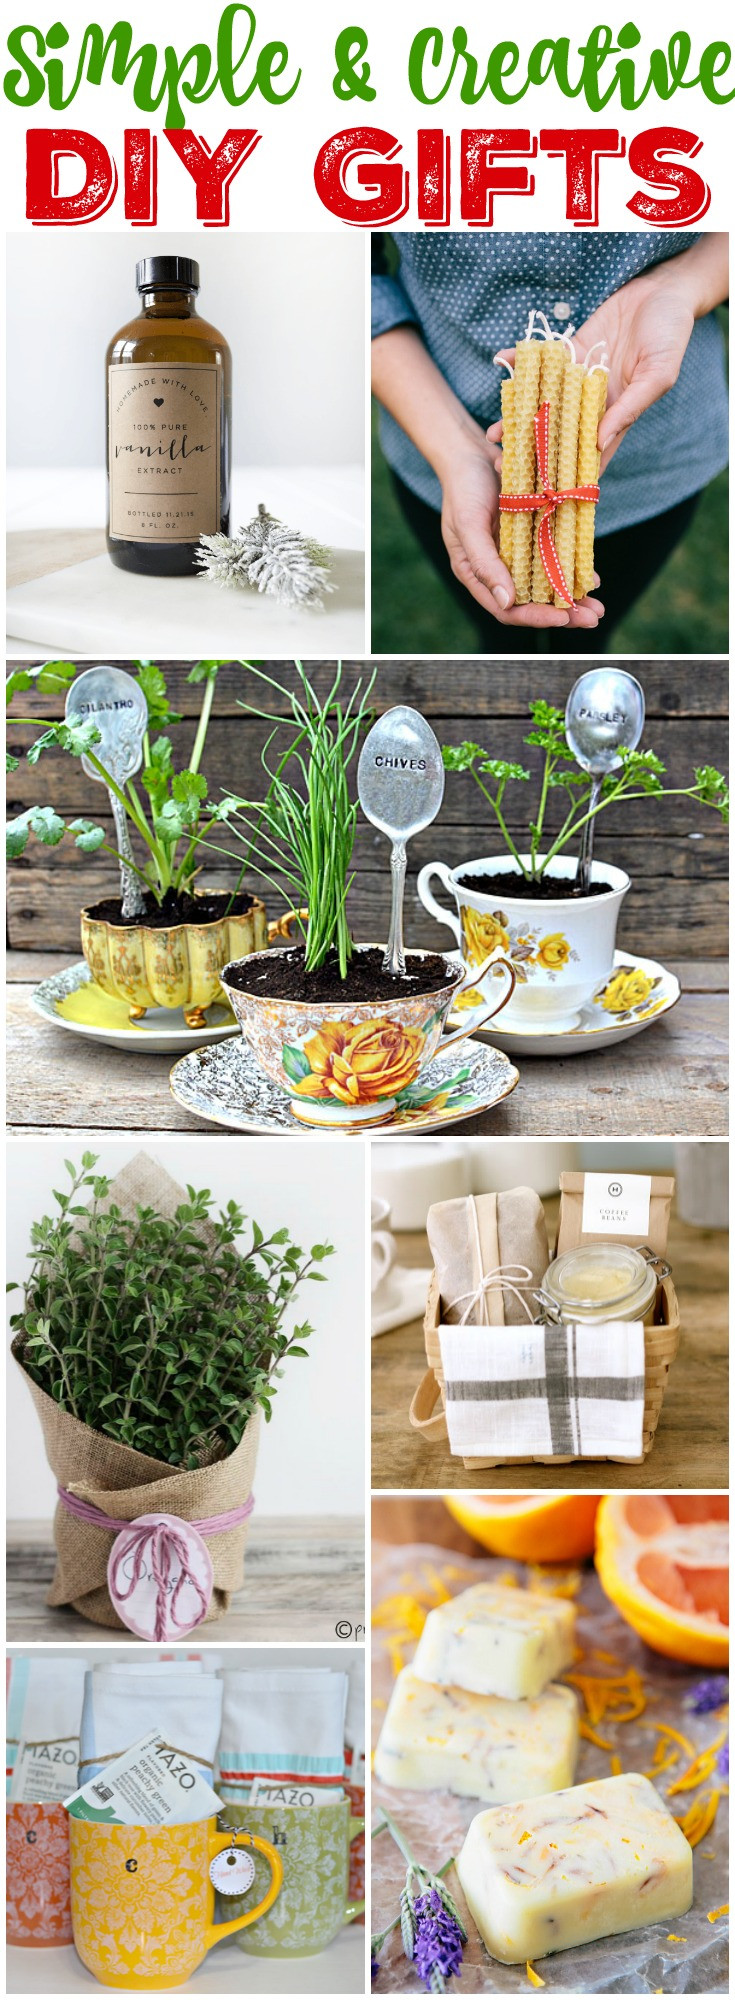 Unique DIY Gifts  25 Simple & Creative DIY Gift Ideas for teachers